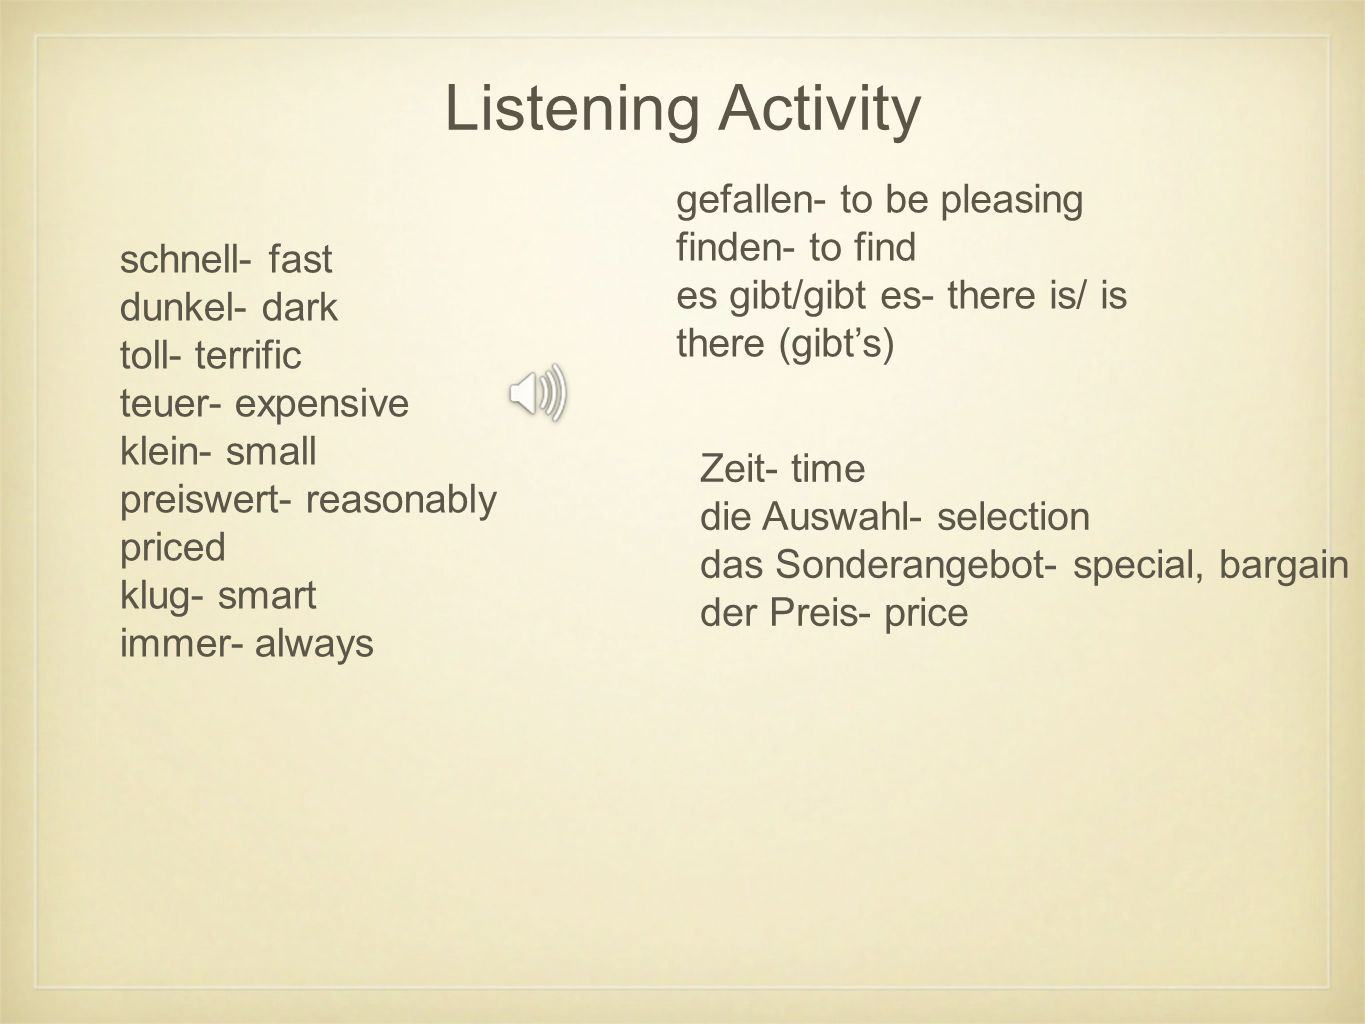 Listening Activity schnell- fast dunkel- dark toll- terrific teuer- expensive klein- small preiswert- reasonably priced klug- smart immer- always gefallen- to be pleasing finden- to find es gibt/gibt es- there is/ is there (gibts) Zeit- time die Auswahl- selection das Sonderangebot- special, bargain der Preis- price